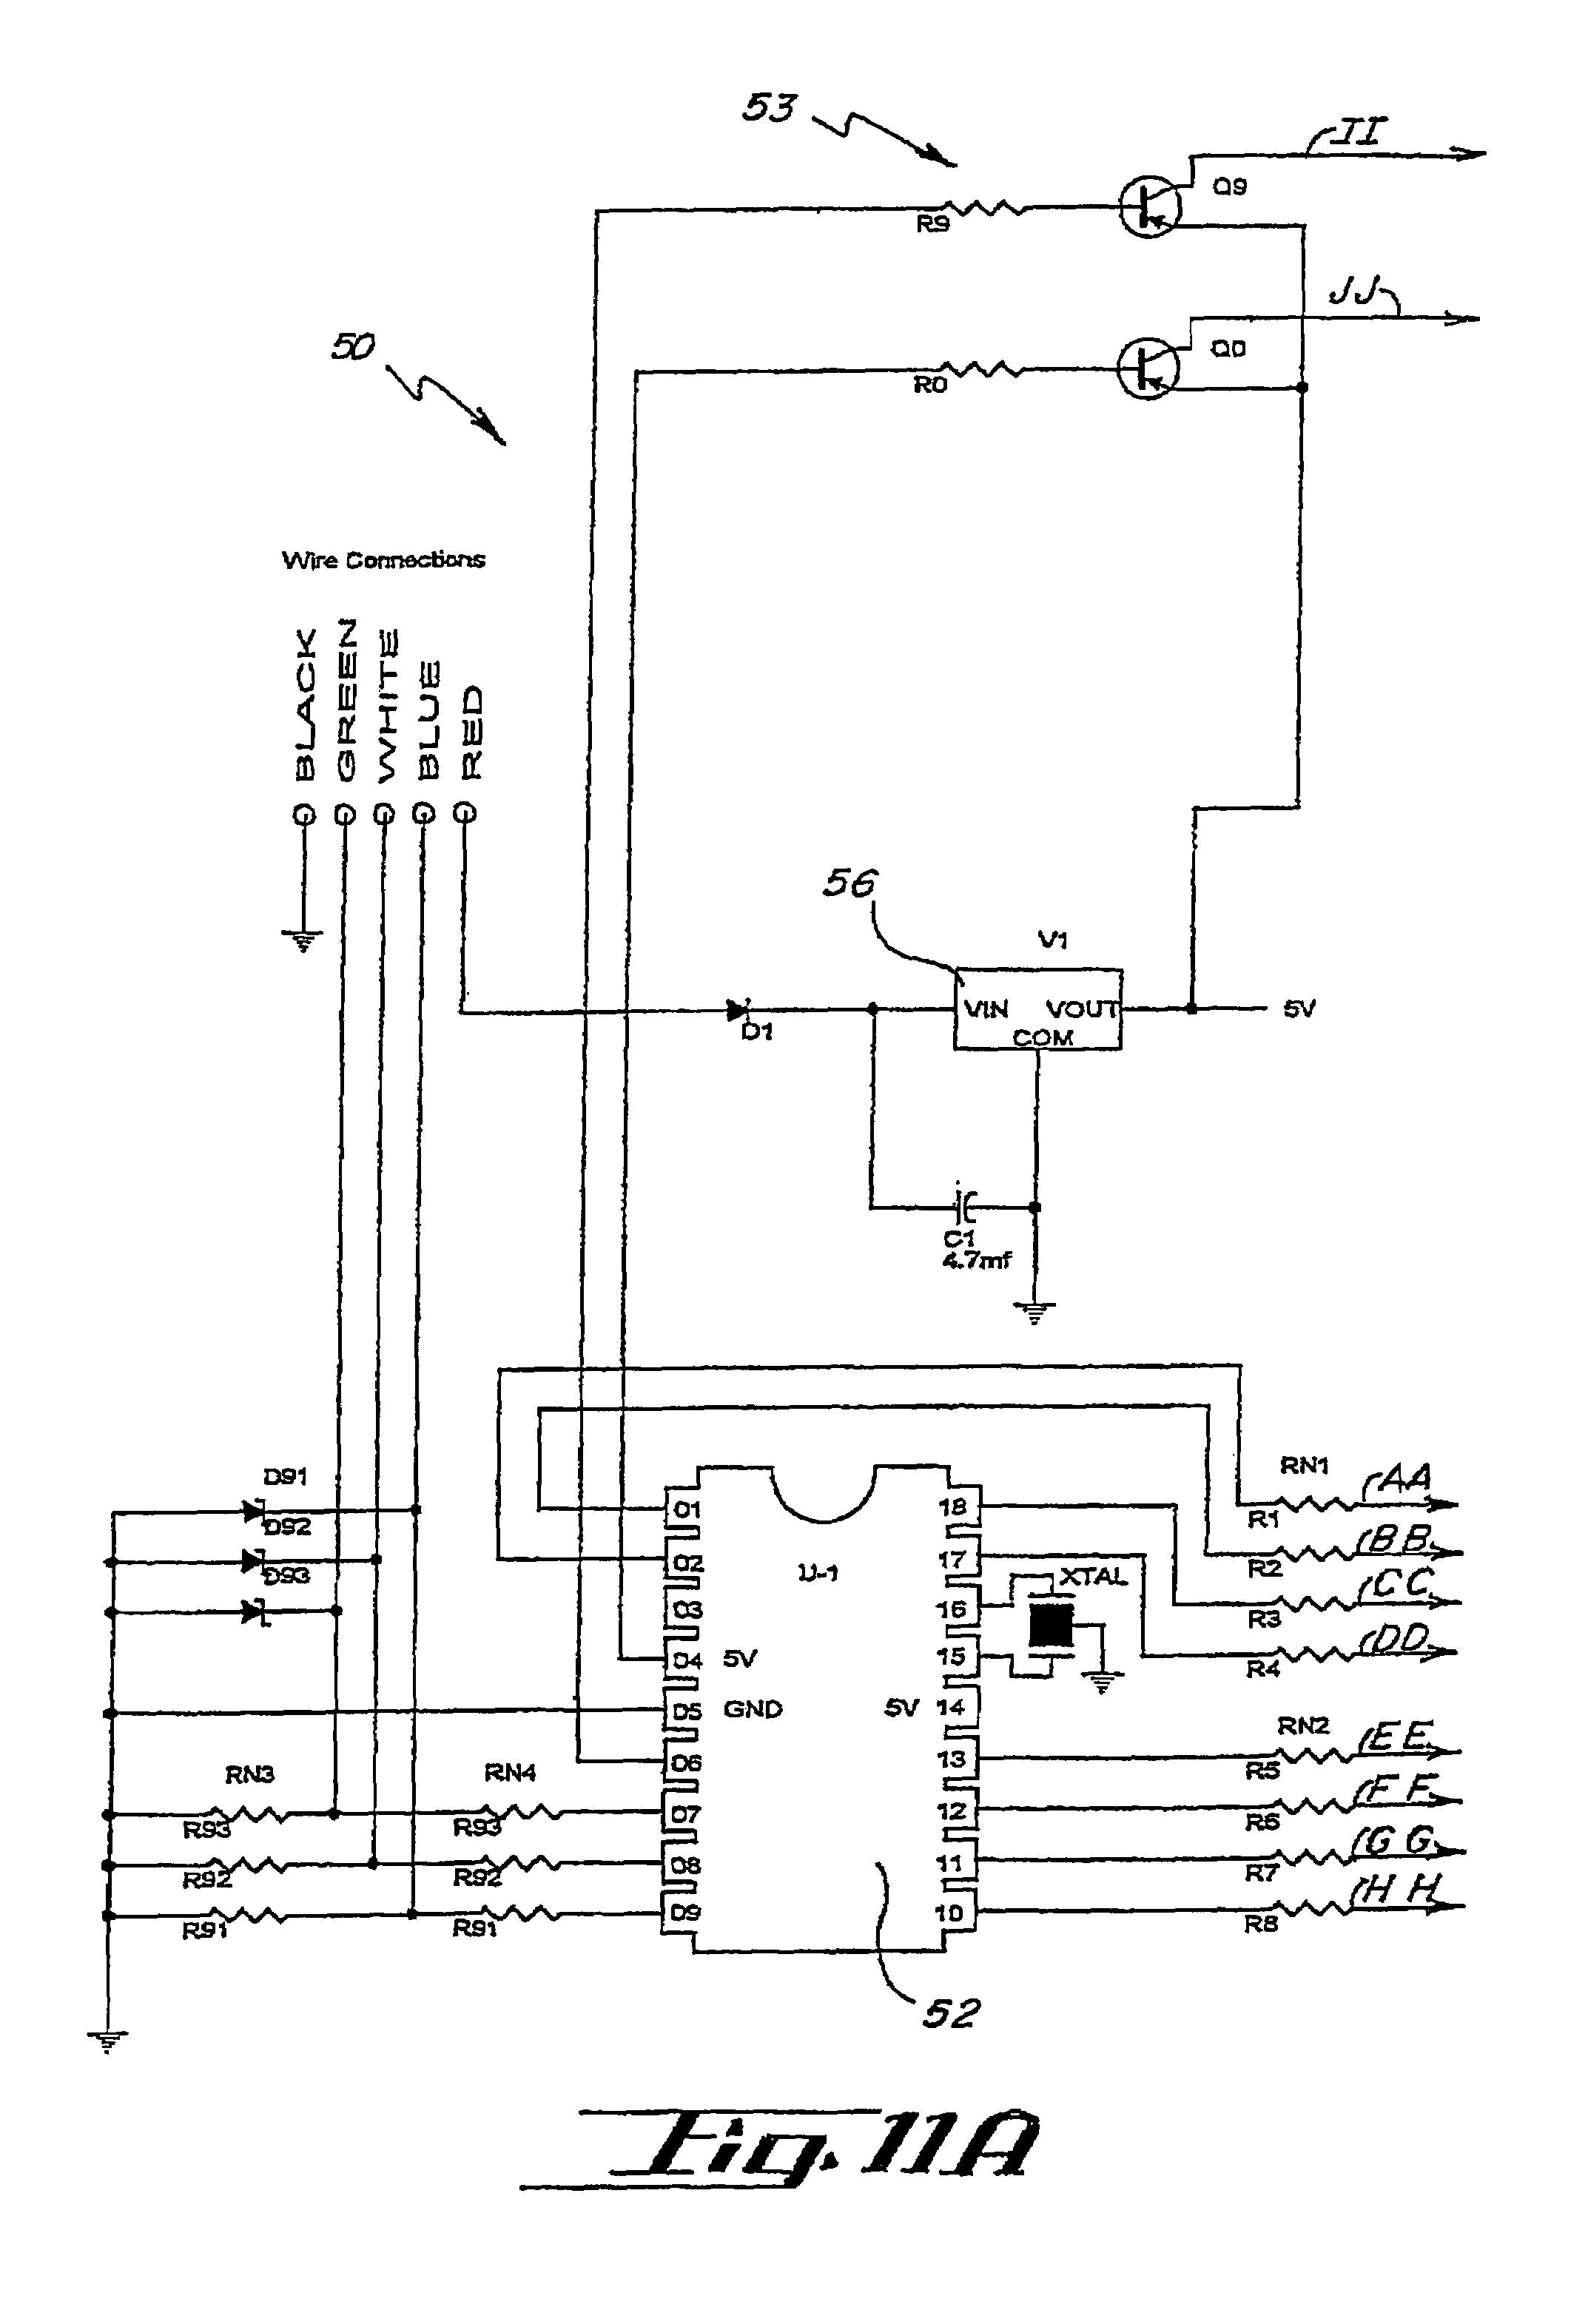 hight resolution of best of wiring diagram for shop lights diagrams digramssamplebest of wiring diagram for shop lights diagrams